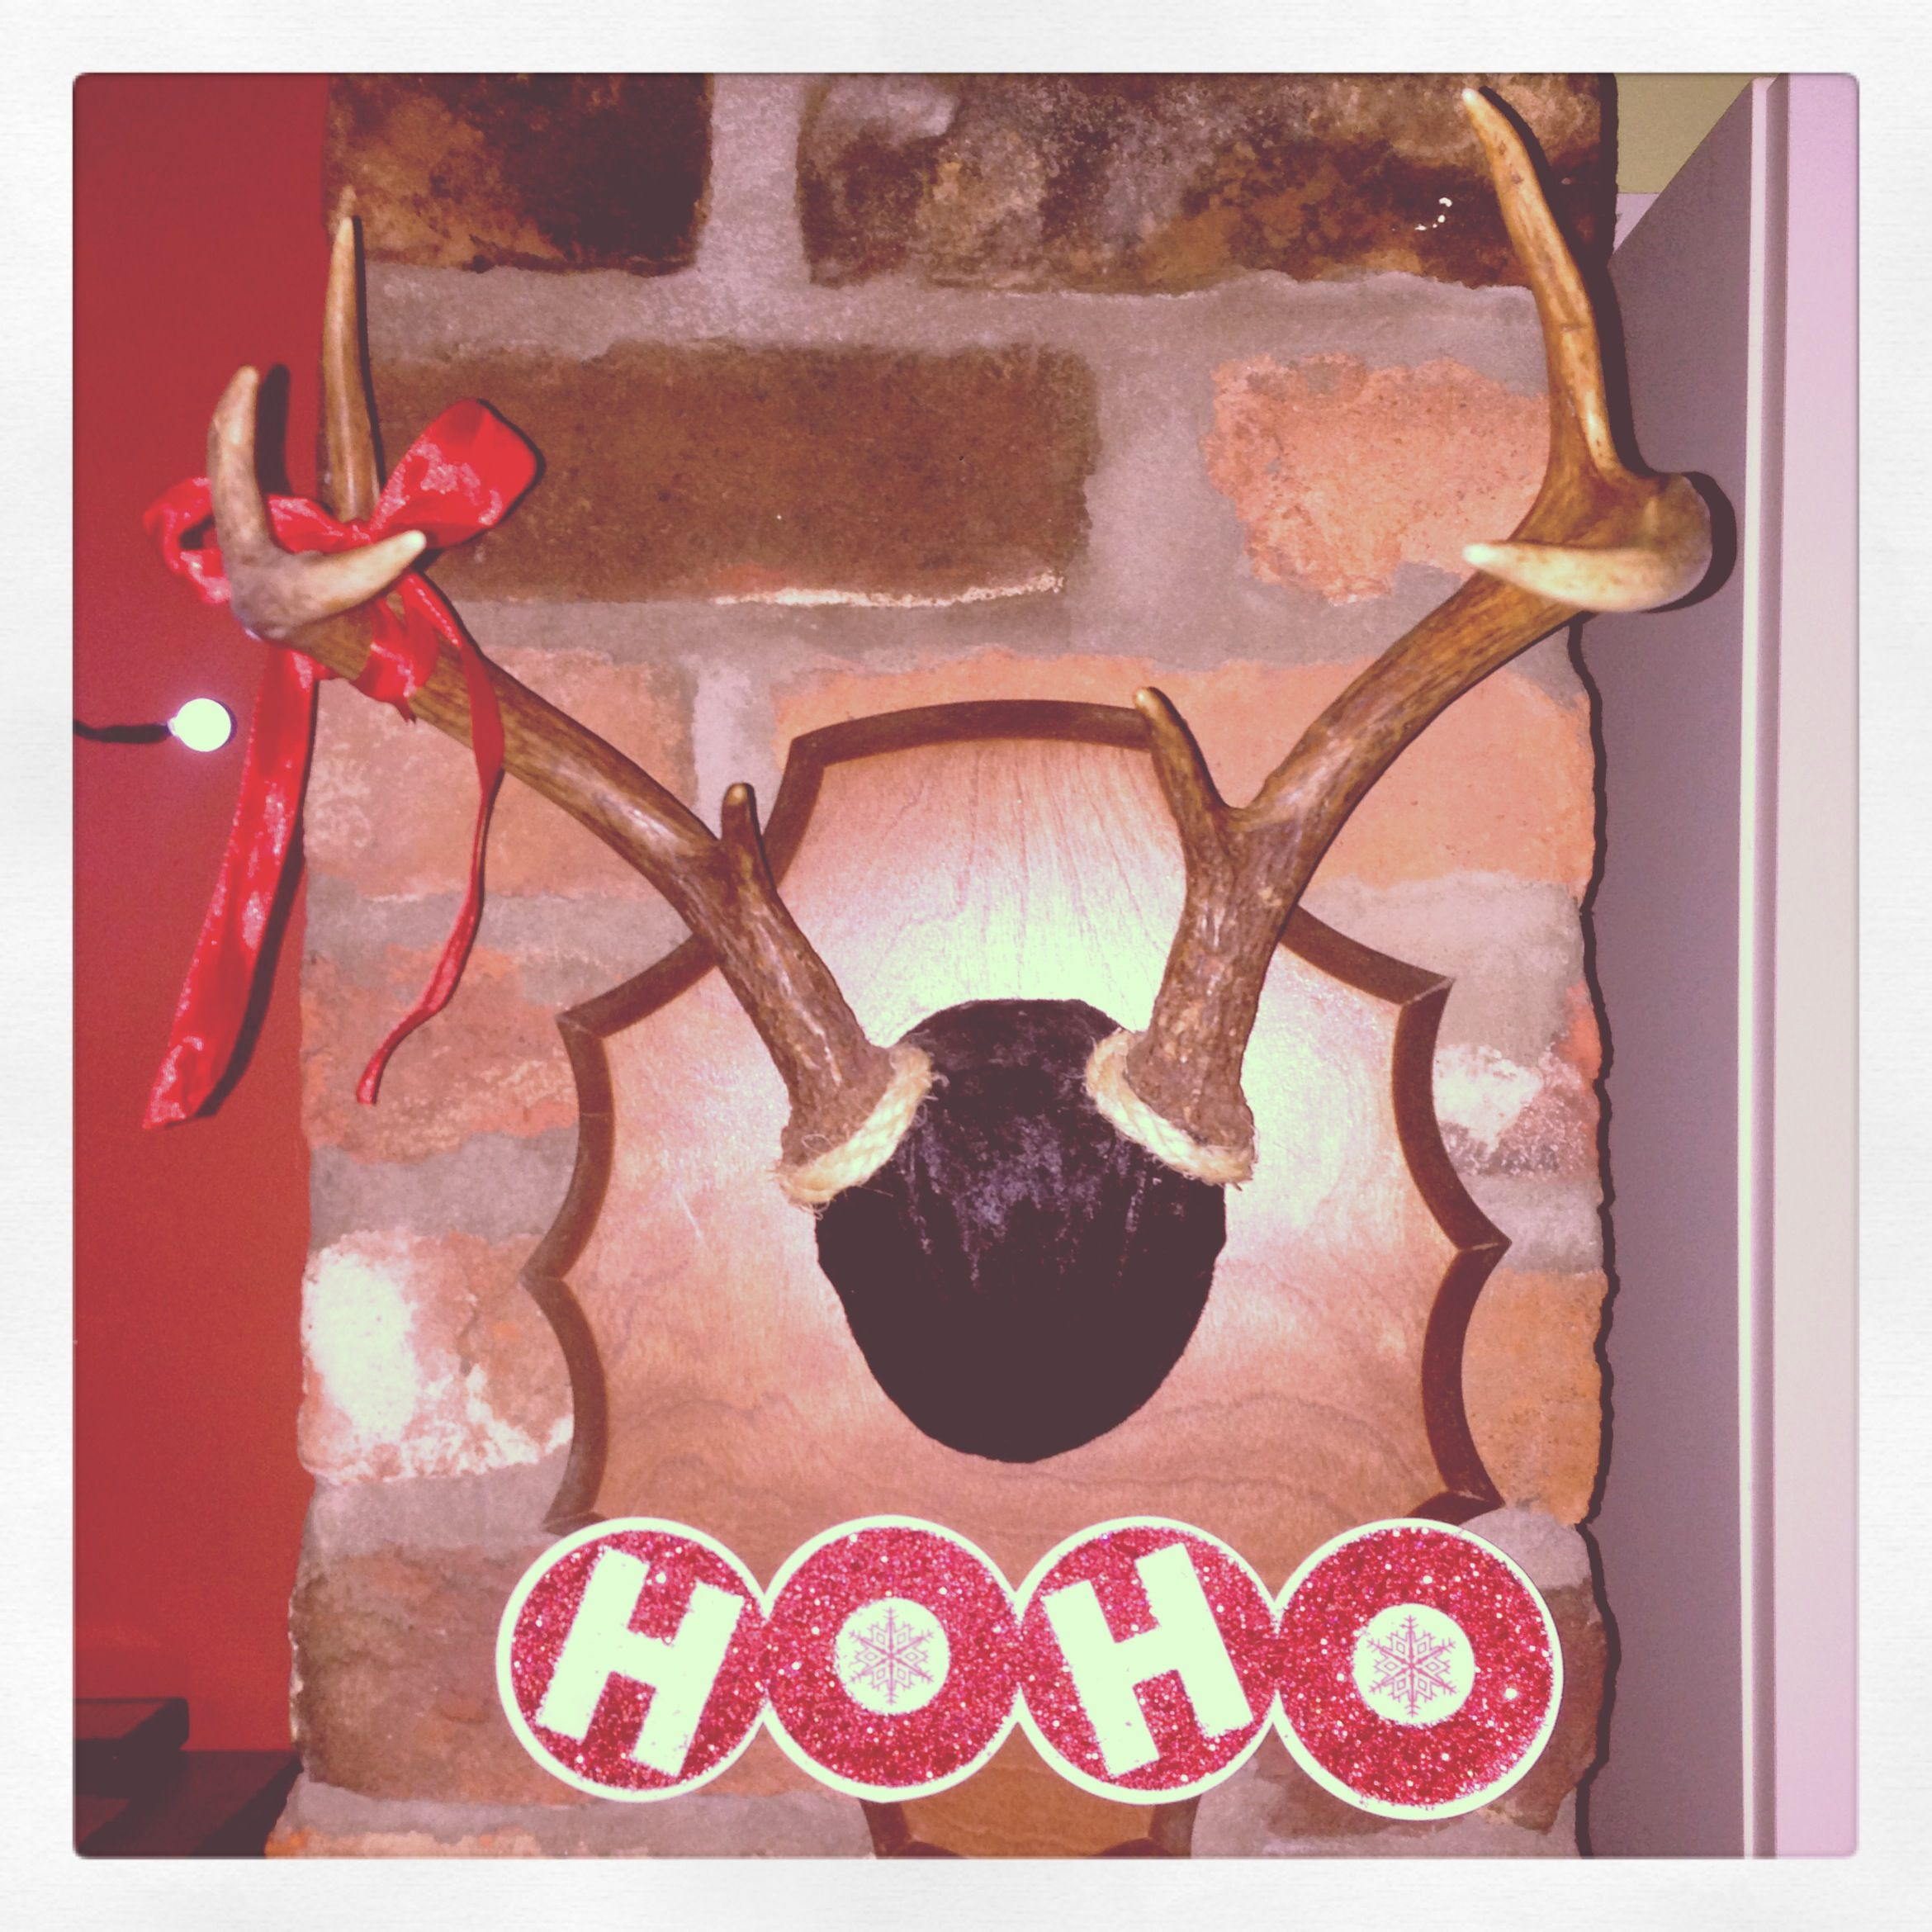 Christmas reindeer decor. Placed a red ribbon on my Rudolph. Cut a dollar store Christmas bag for the Ho Ho Ho sign. #jes